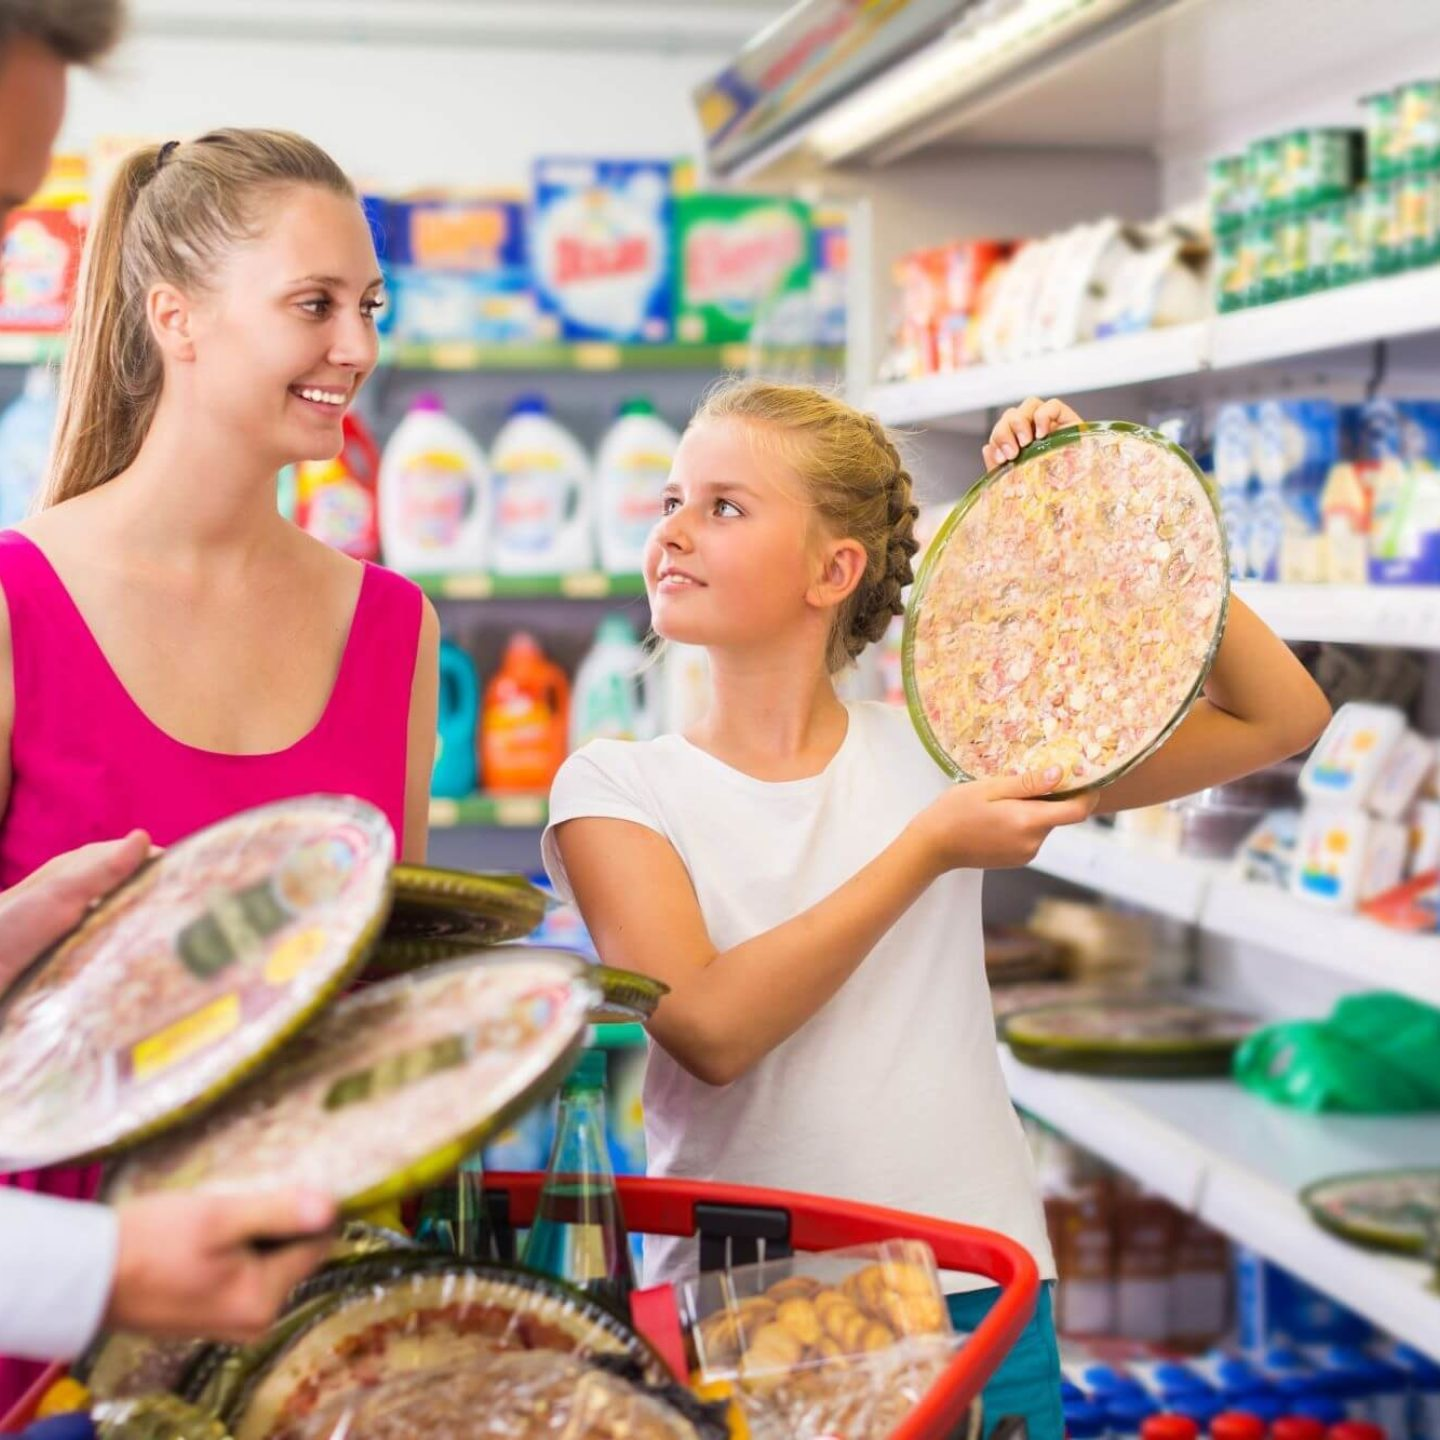 Family picking out pie in store - Getting to the Truth About Gluten: Everything You Need to Know   NSF International